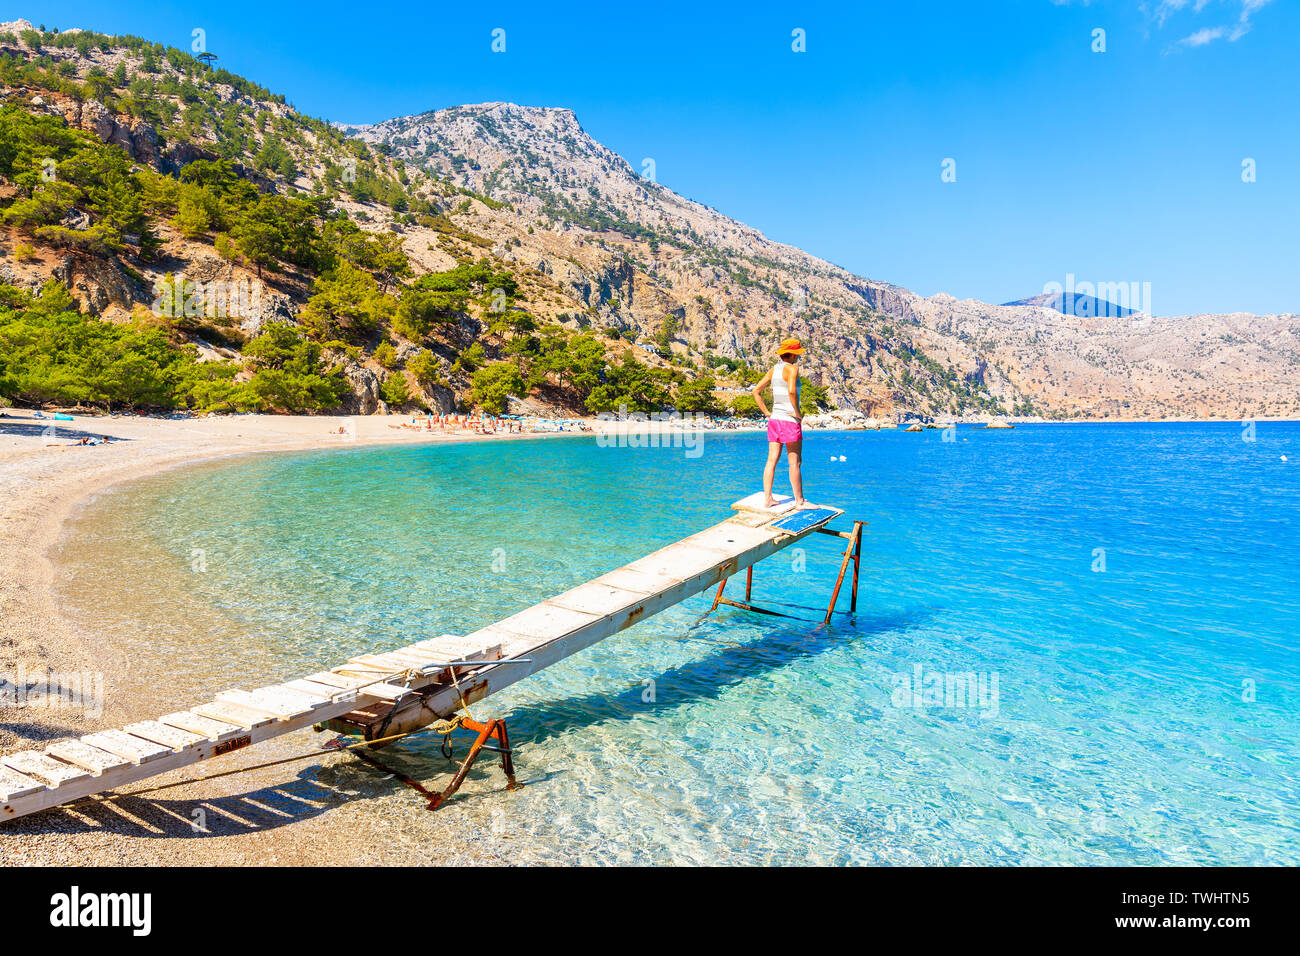 Young woman standing on small wooden jetty at Apella beach, Karpathos island, Greece Stock Photo